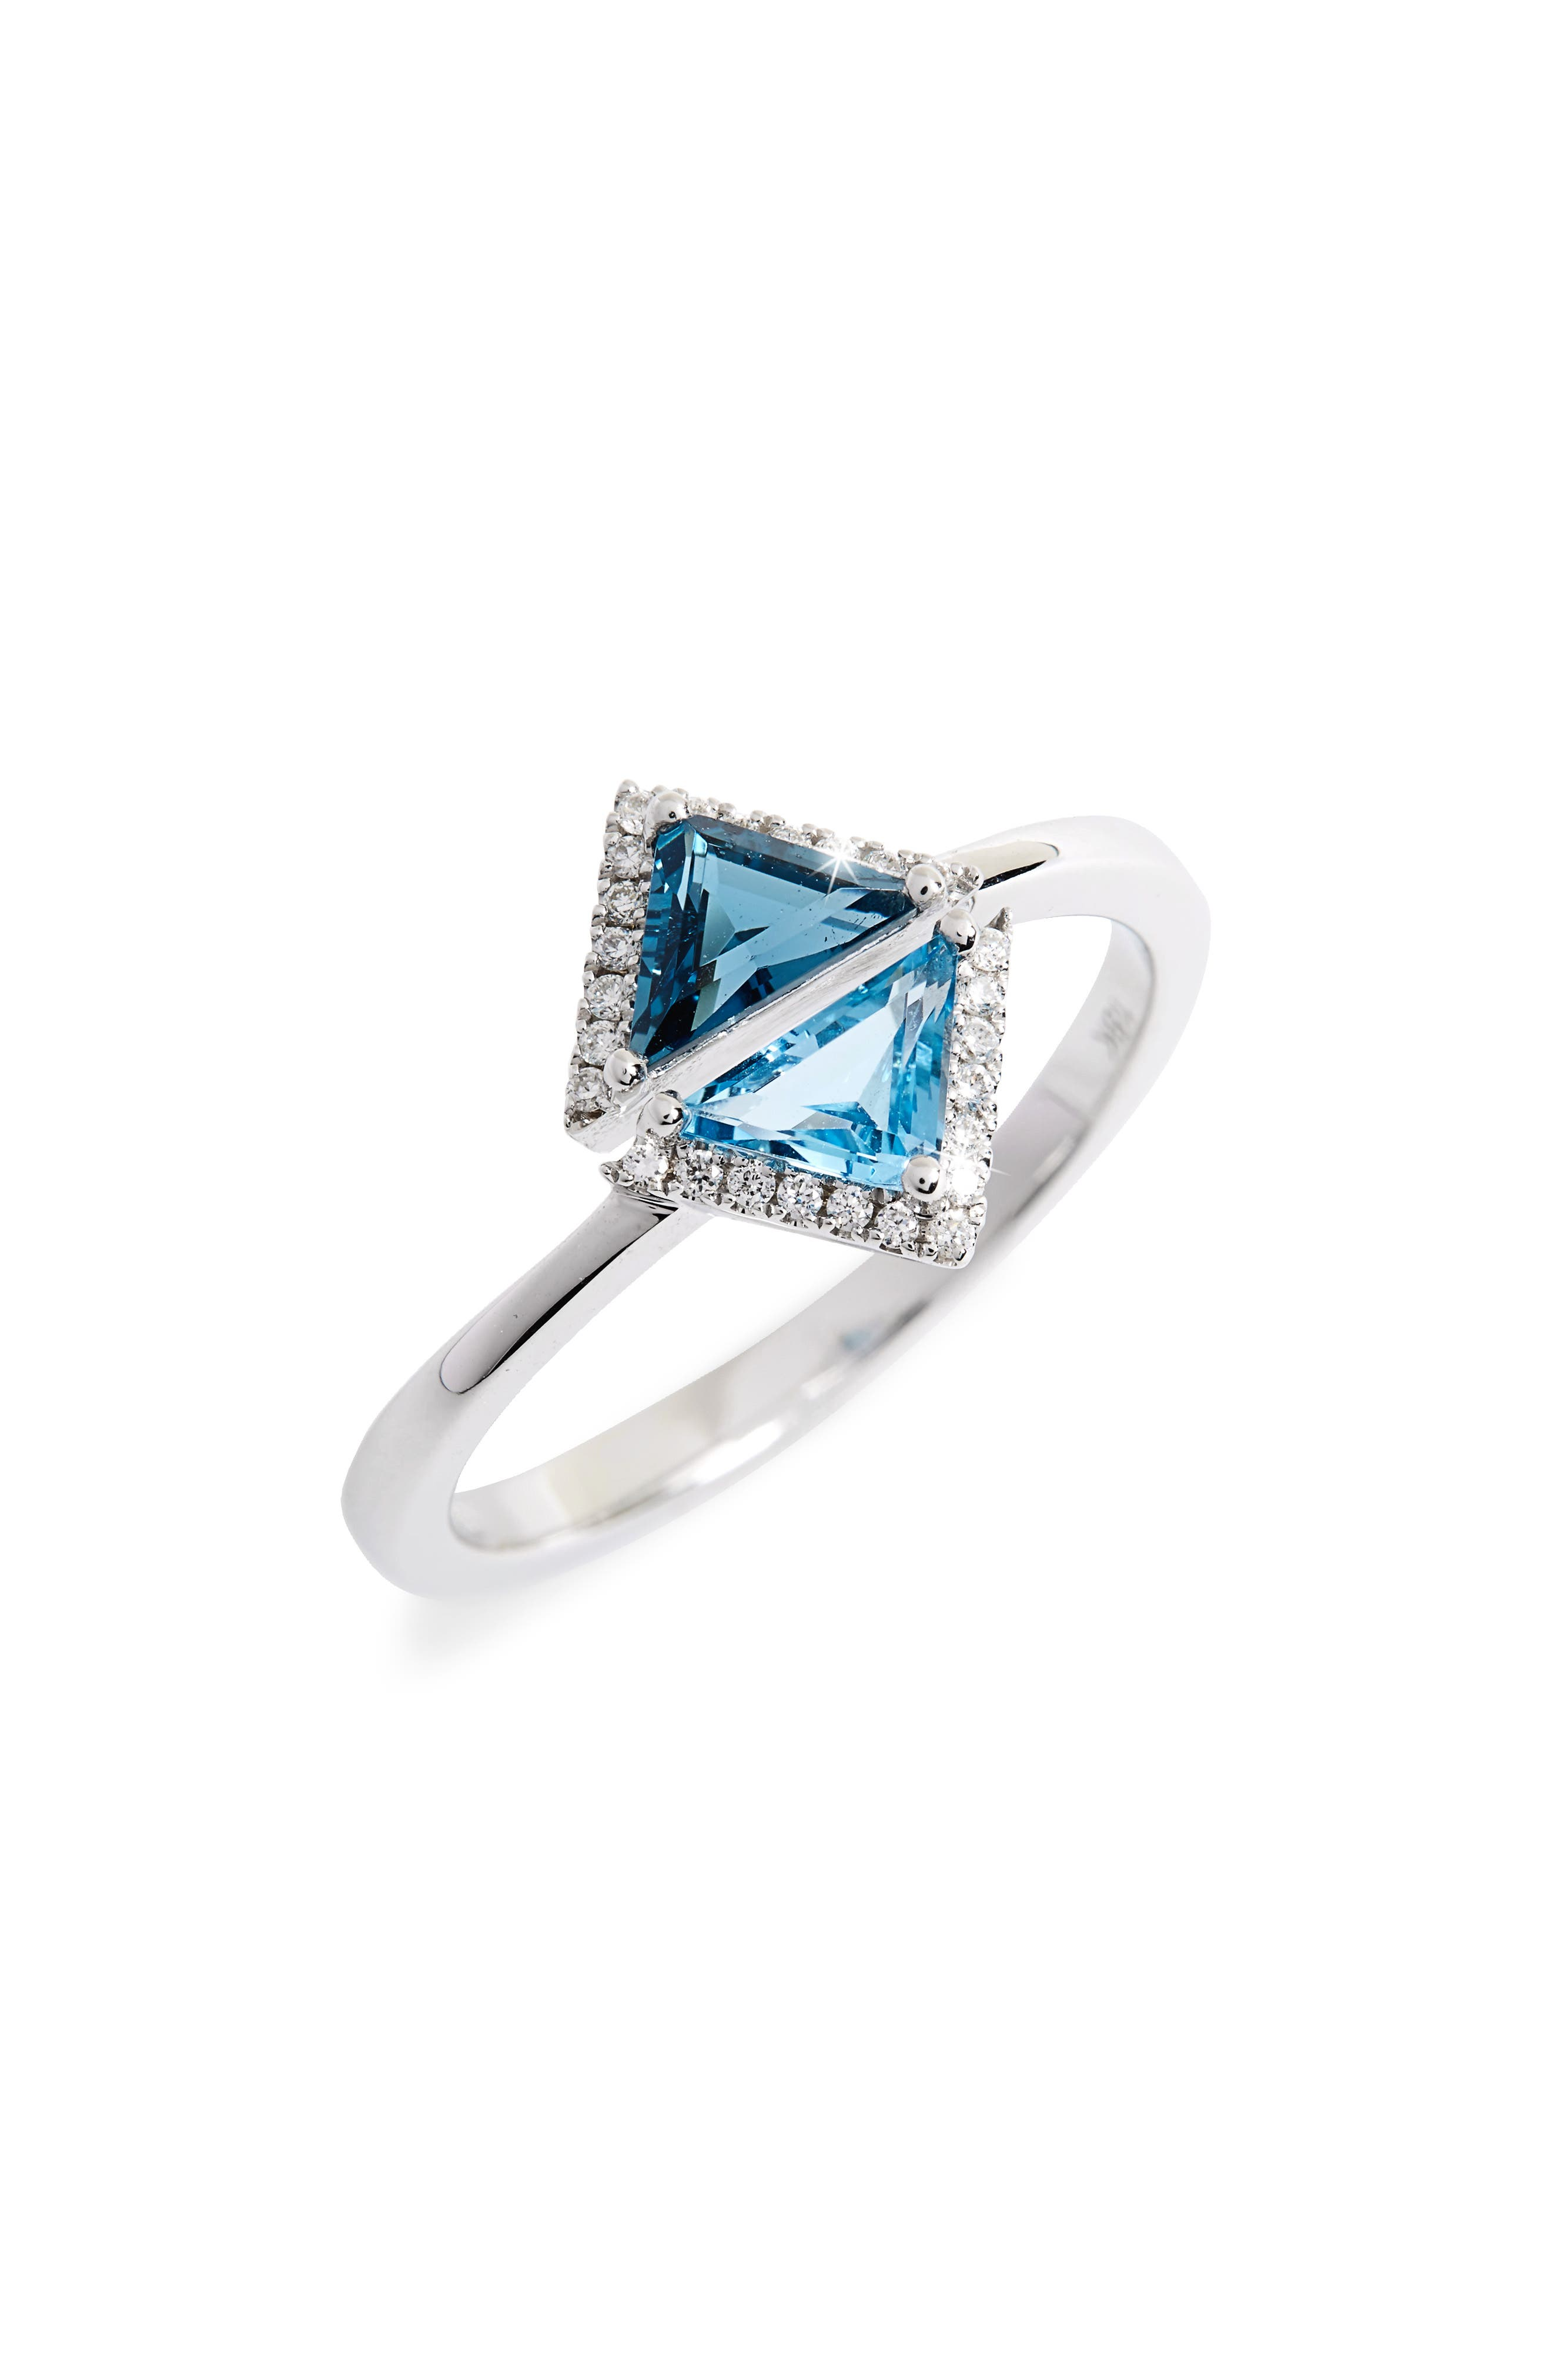 Iris Double Triangle Diamond & Semiprecious Stone Ring,                             Main thumbnail 1, color,                             710